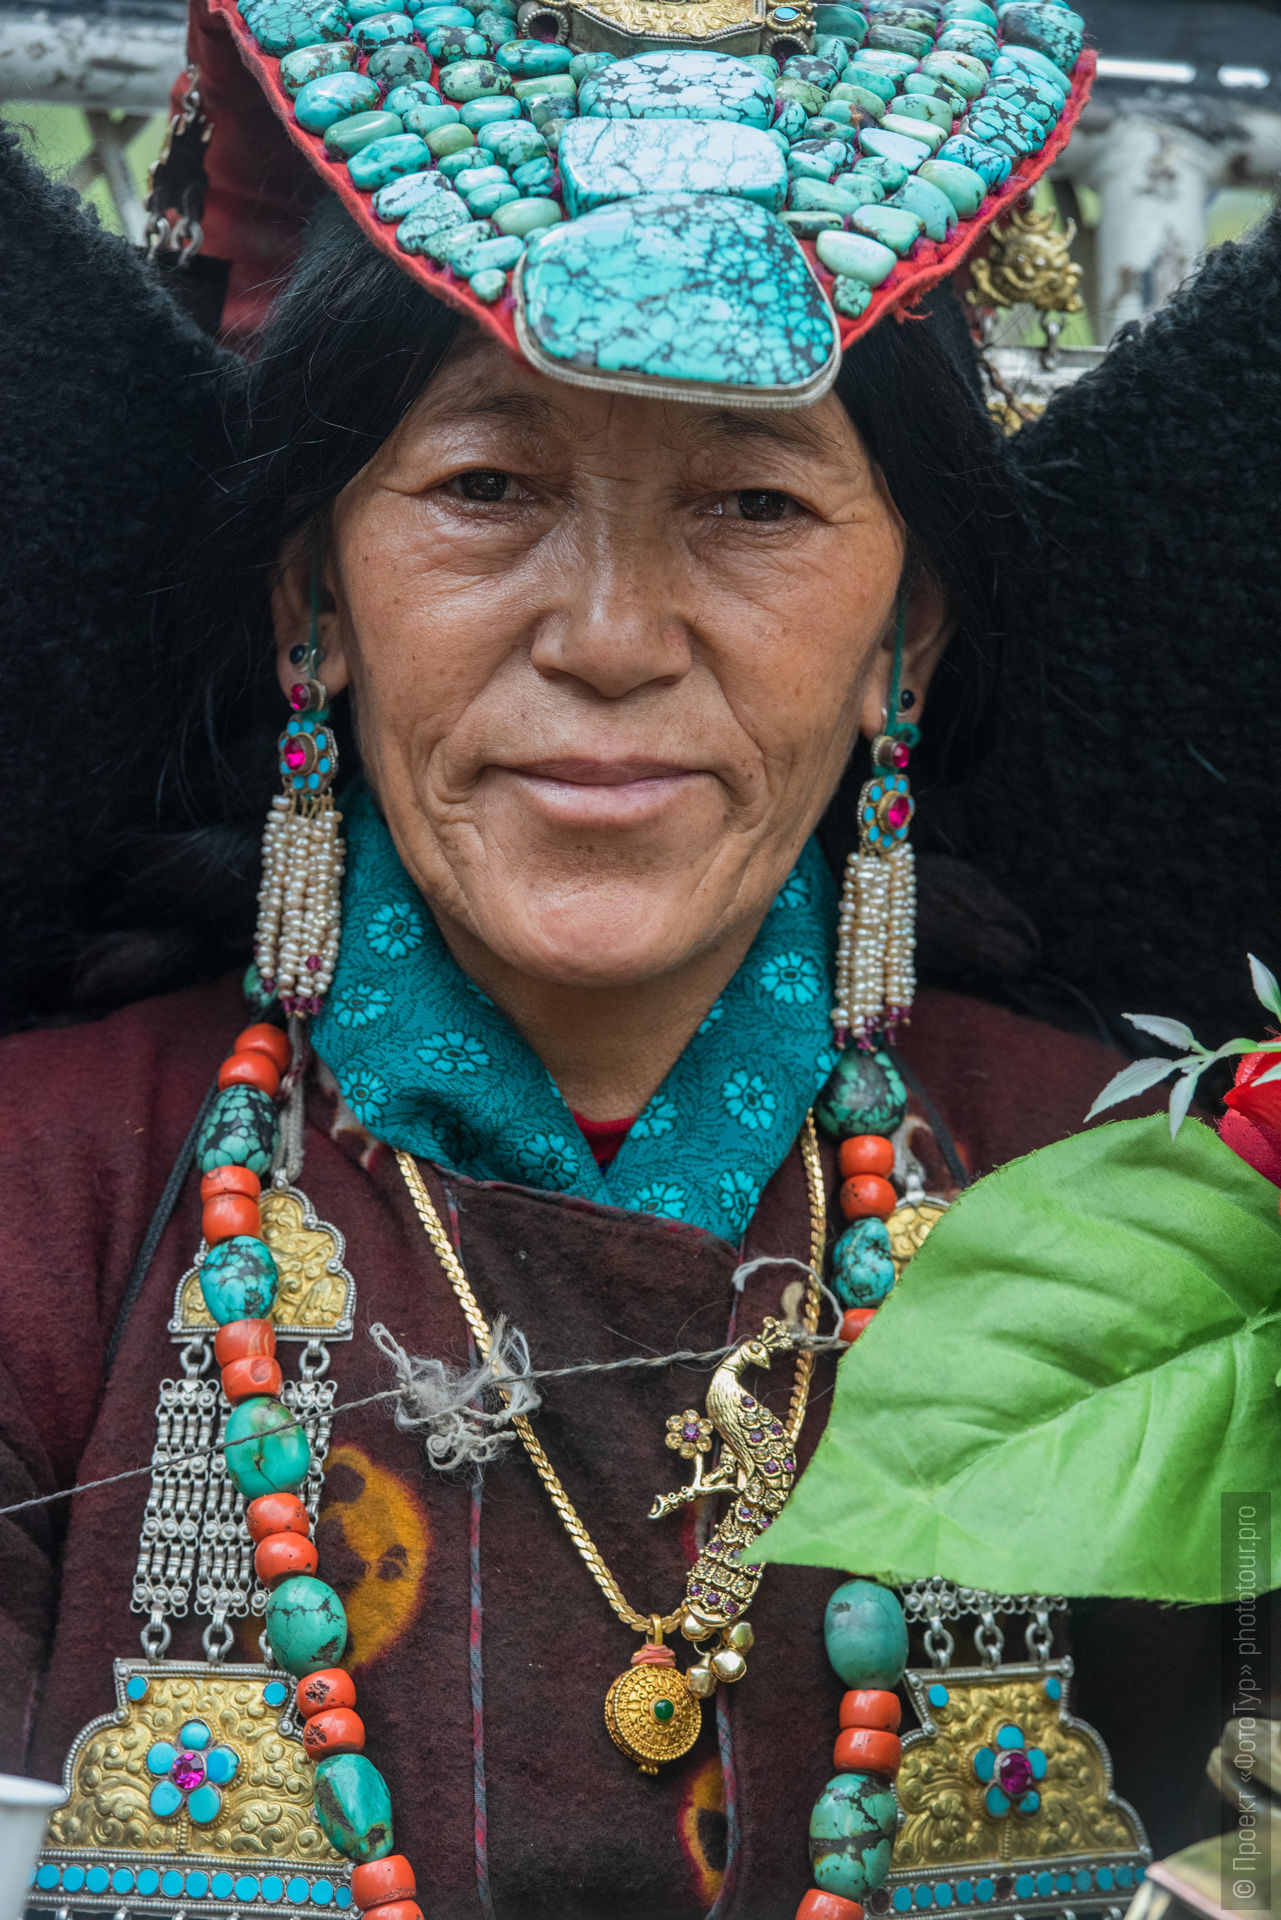 Ladakh woman in national clothes. Ladakh Tour for women, travel and acquaintance with the culture of Tibetan matriarchy.